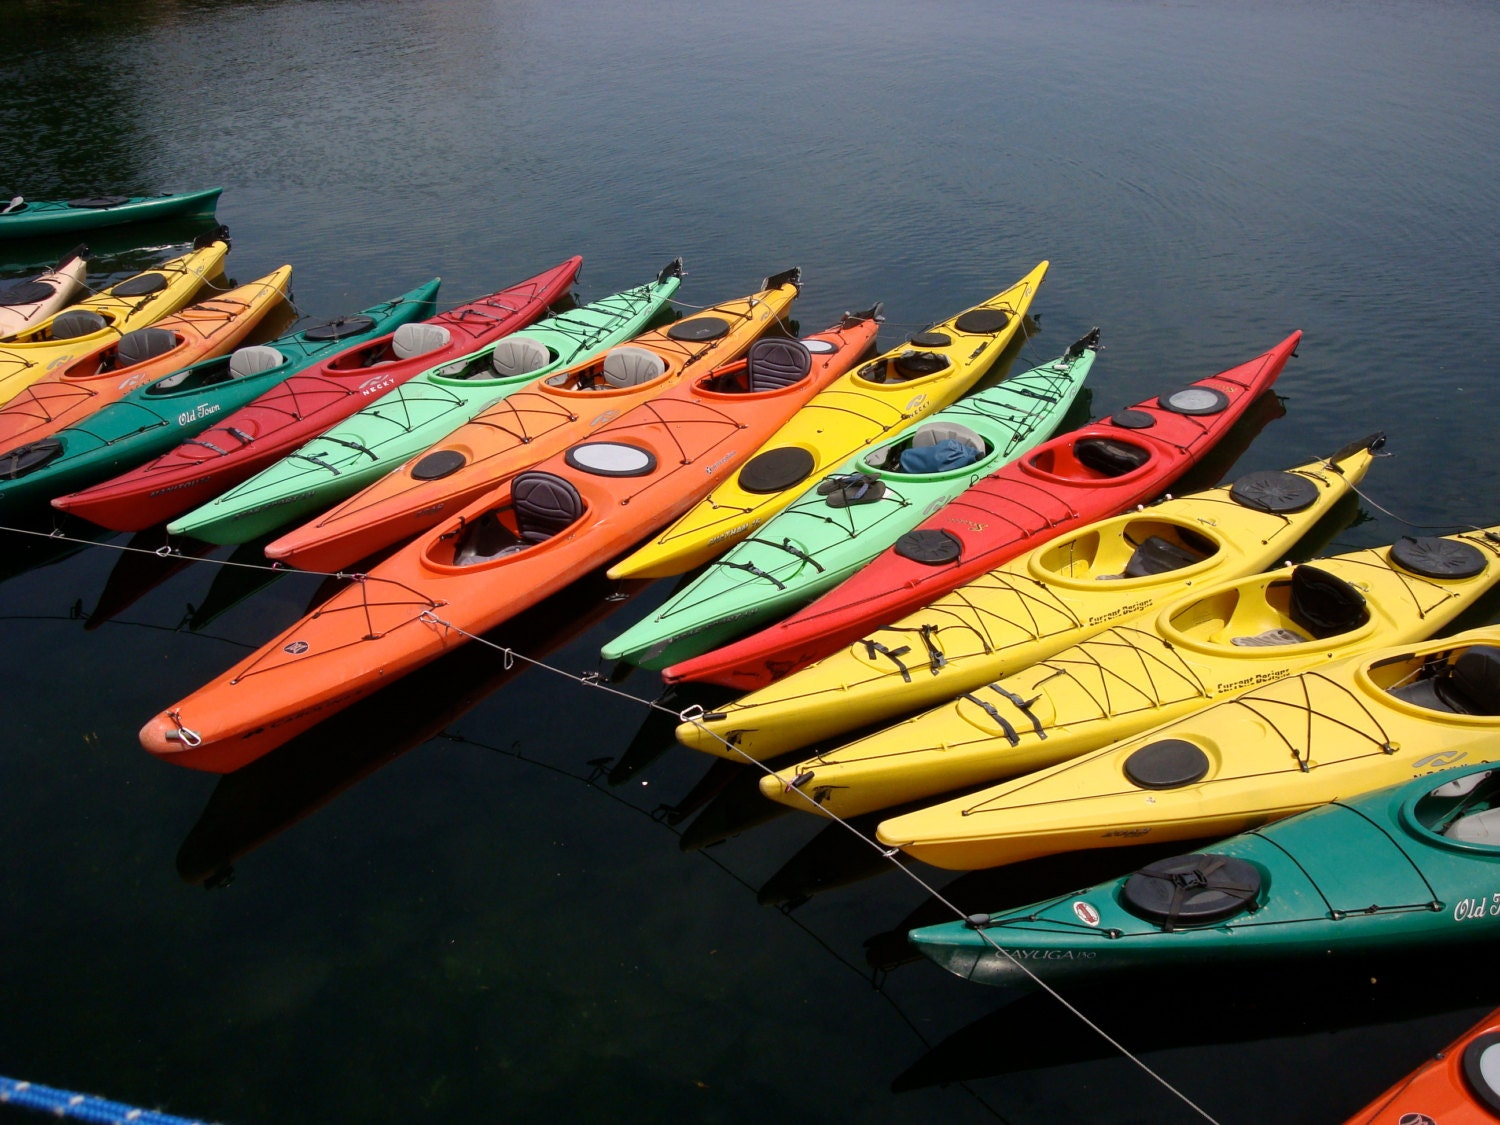 Boats in new england kayaks dinghies row boats fishing for Fishing row boats